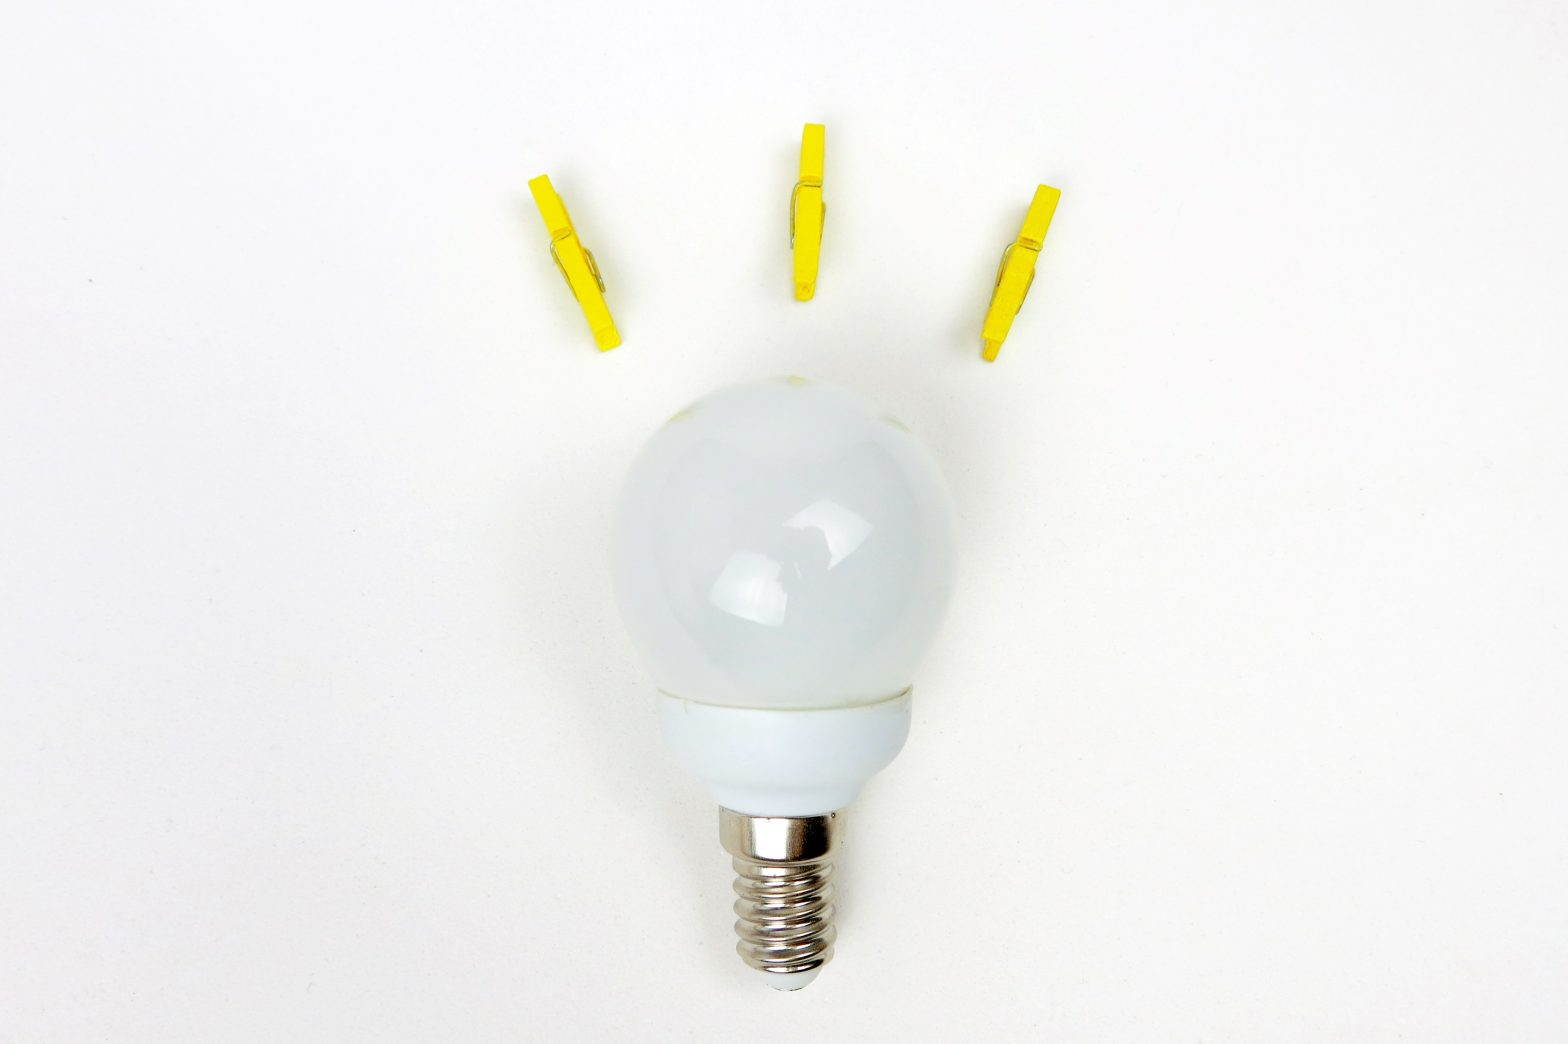 Light bulb with yellow clips